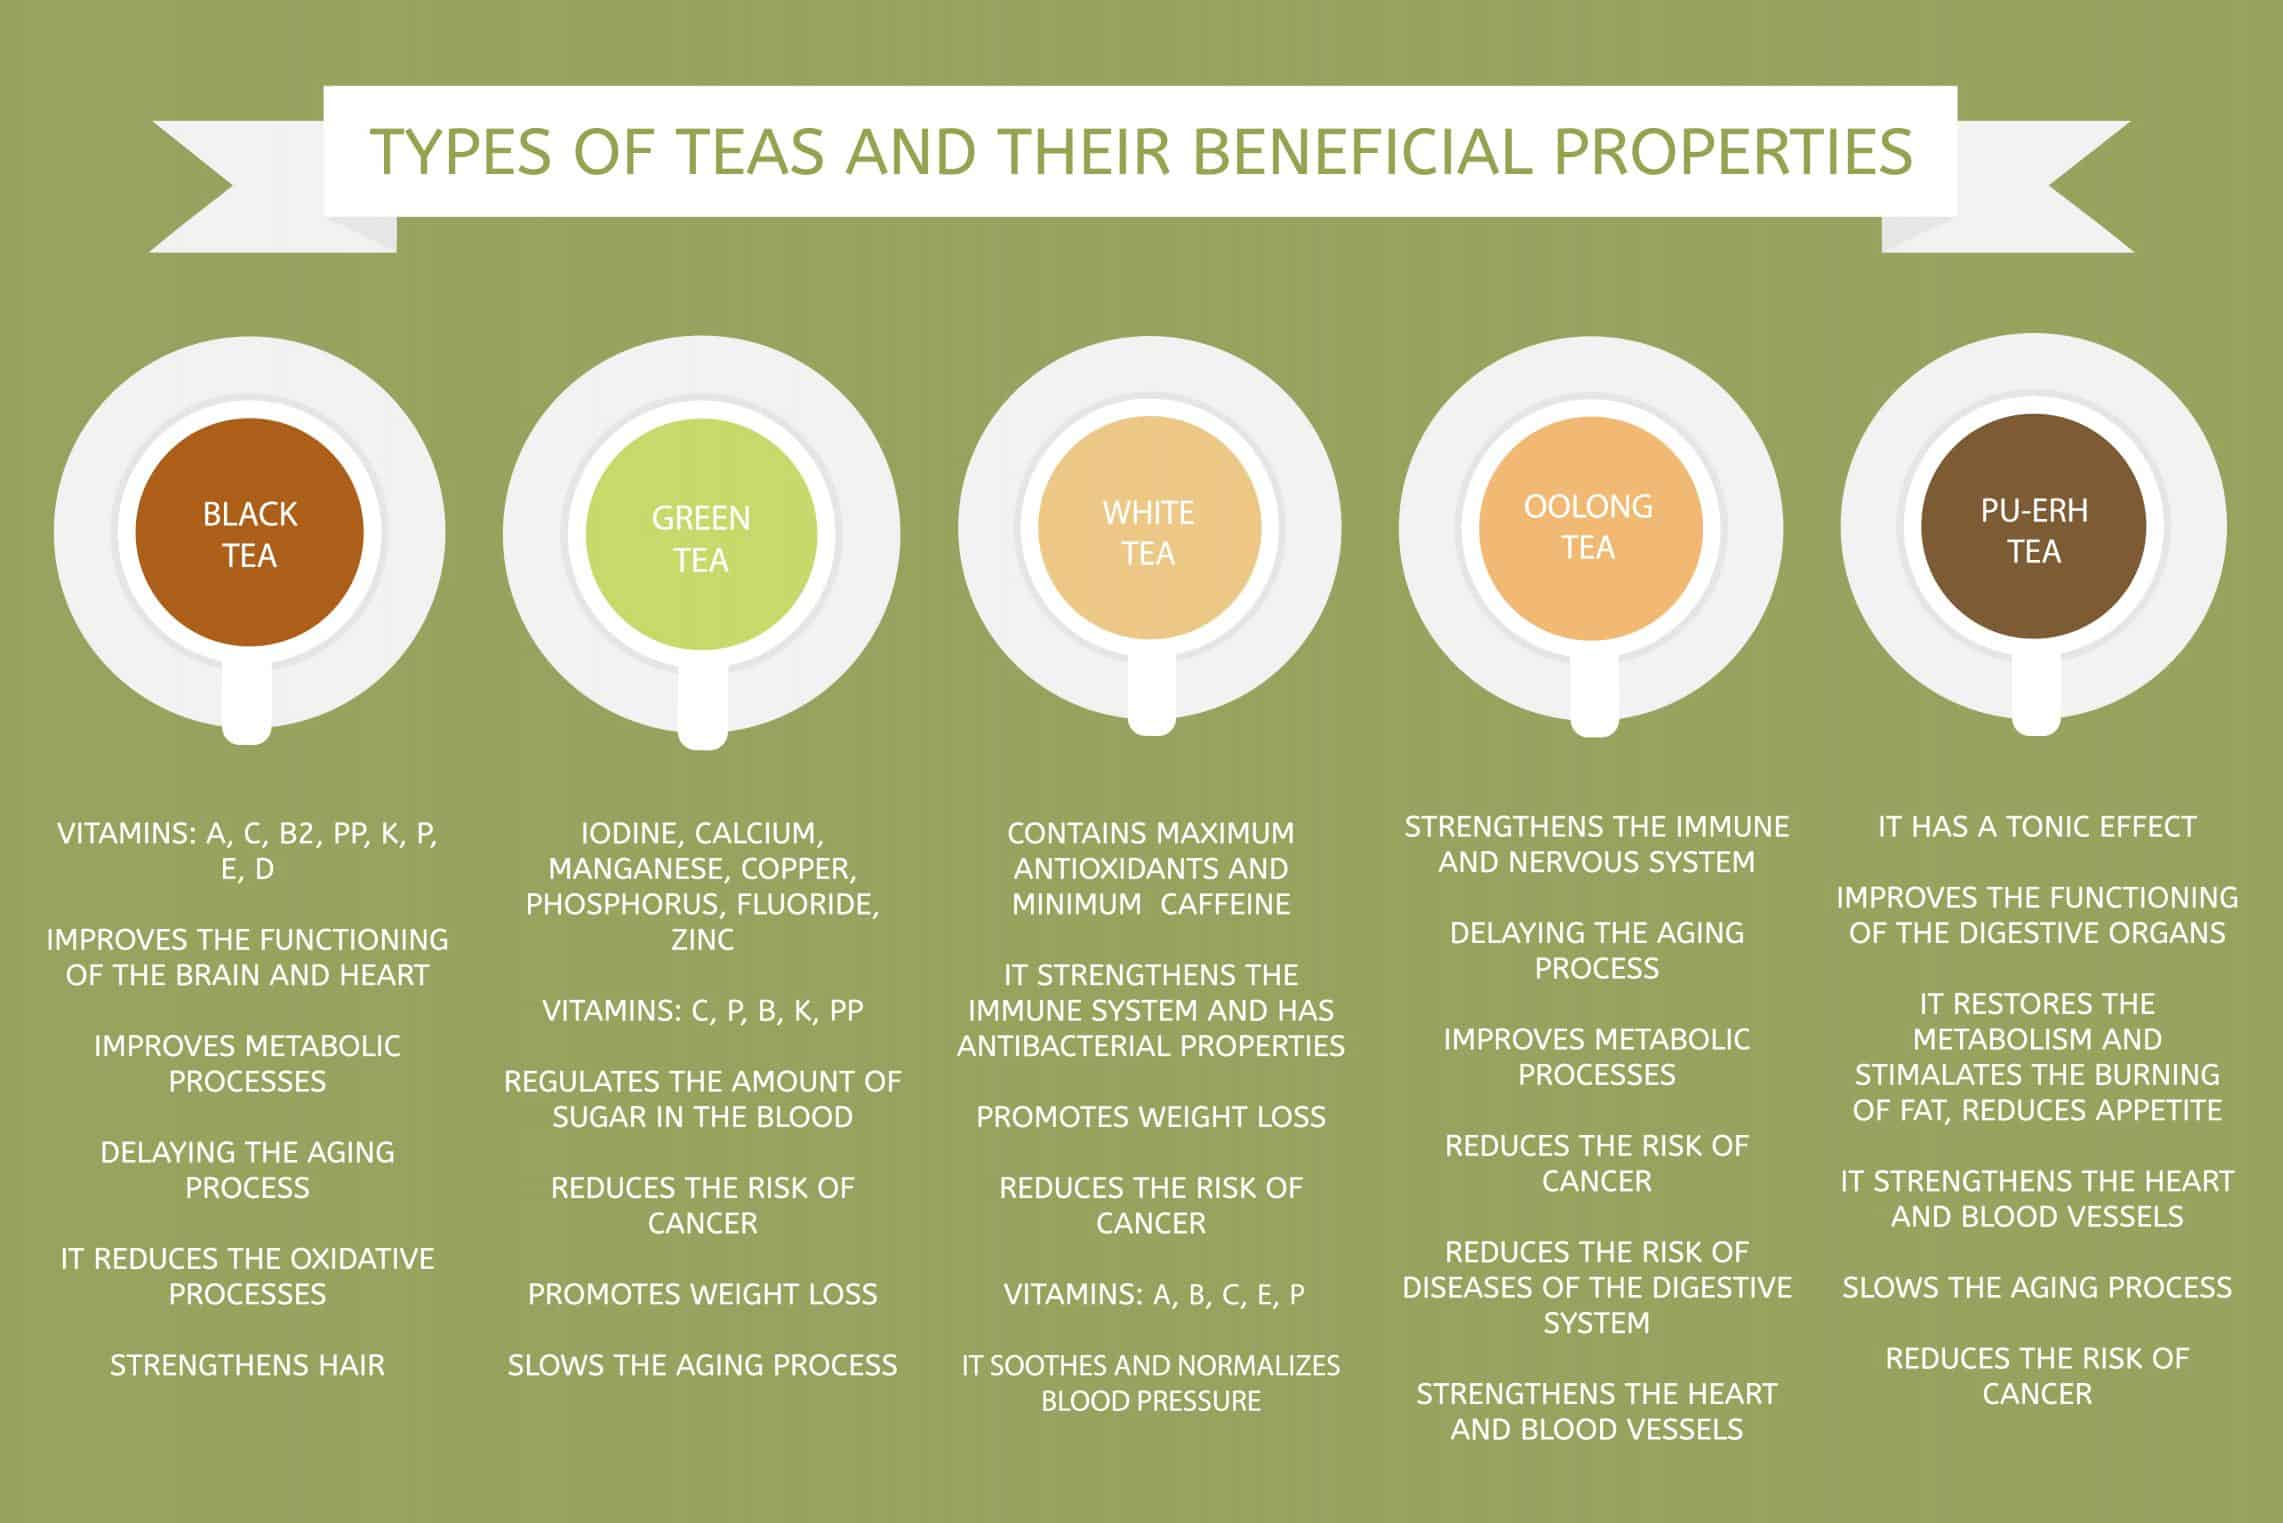 types-of-tea-and-their-beneficial-properties-e1554351236699-5257315